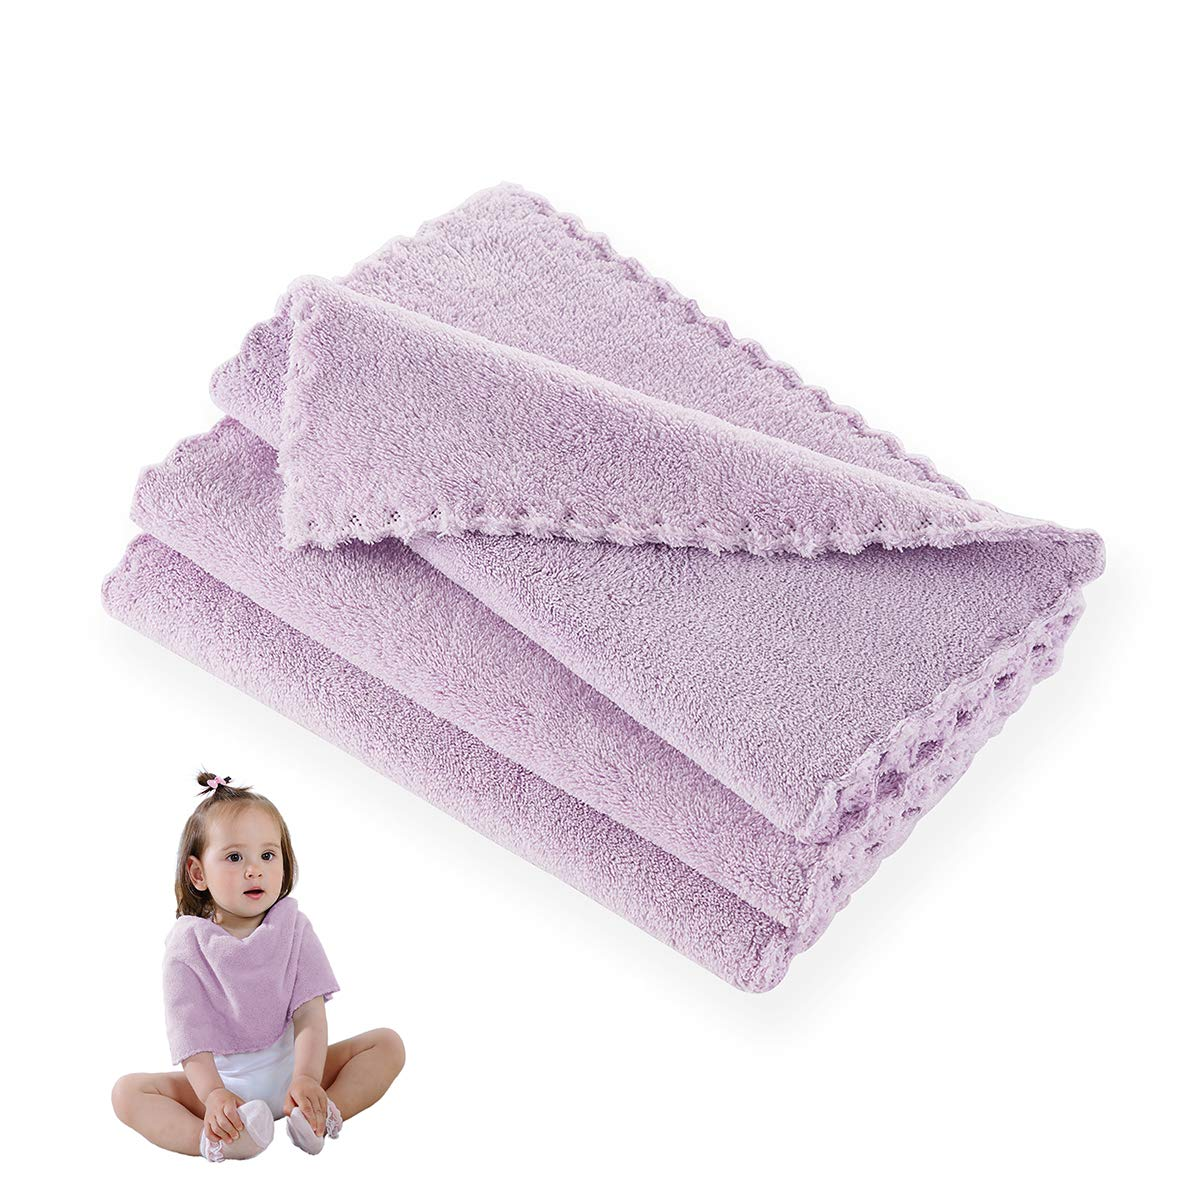 Hand Towel, Baby Washcloth Wipes, Extremely Soft & Absorbent, Extra Durable & Hypoallergenic, 3 Pack Set, 10 x 20 Inches, Perfect Cloth for Sensitive Skin of All Age –- Light Purple